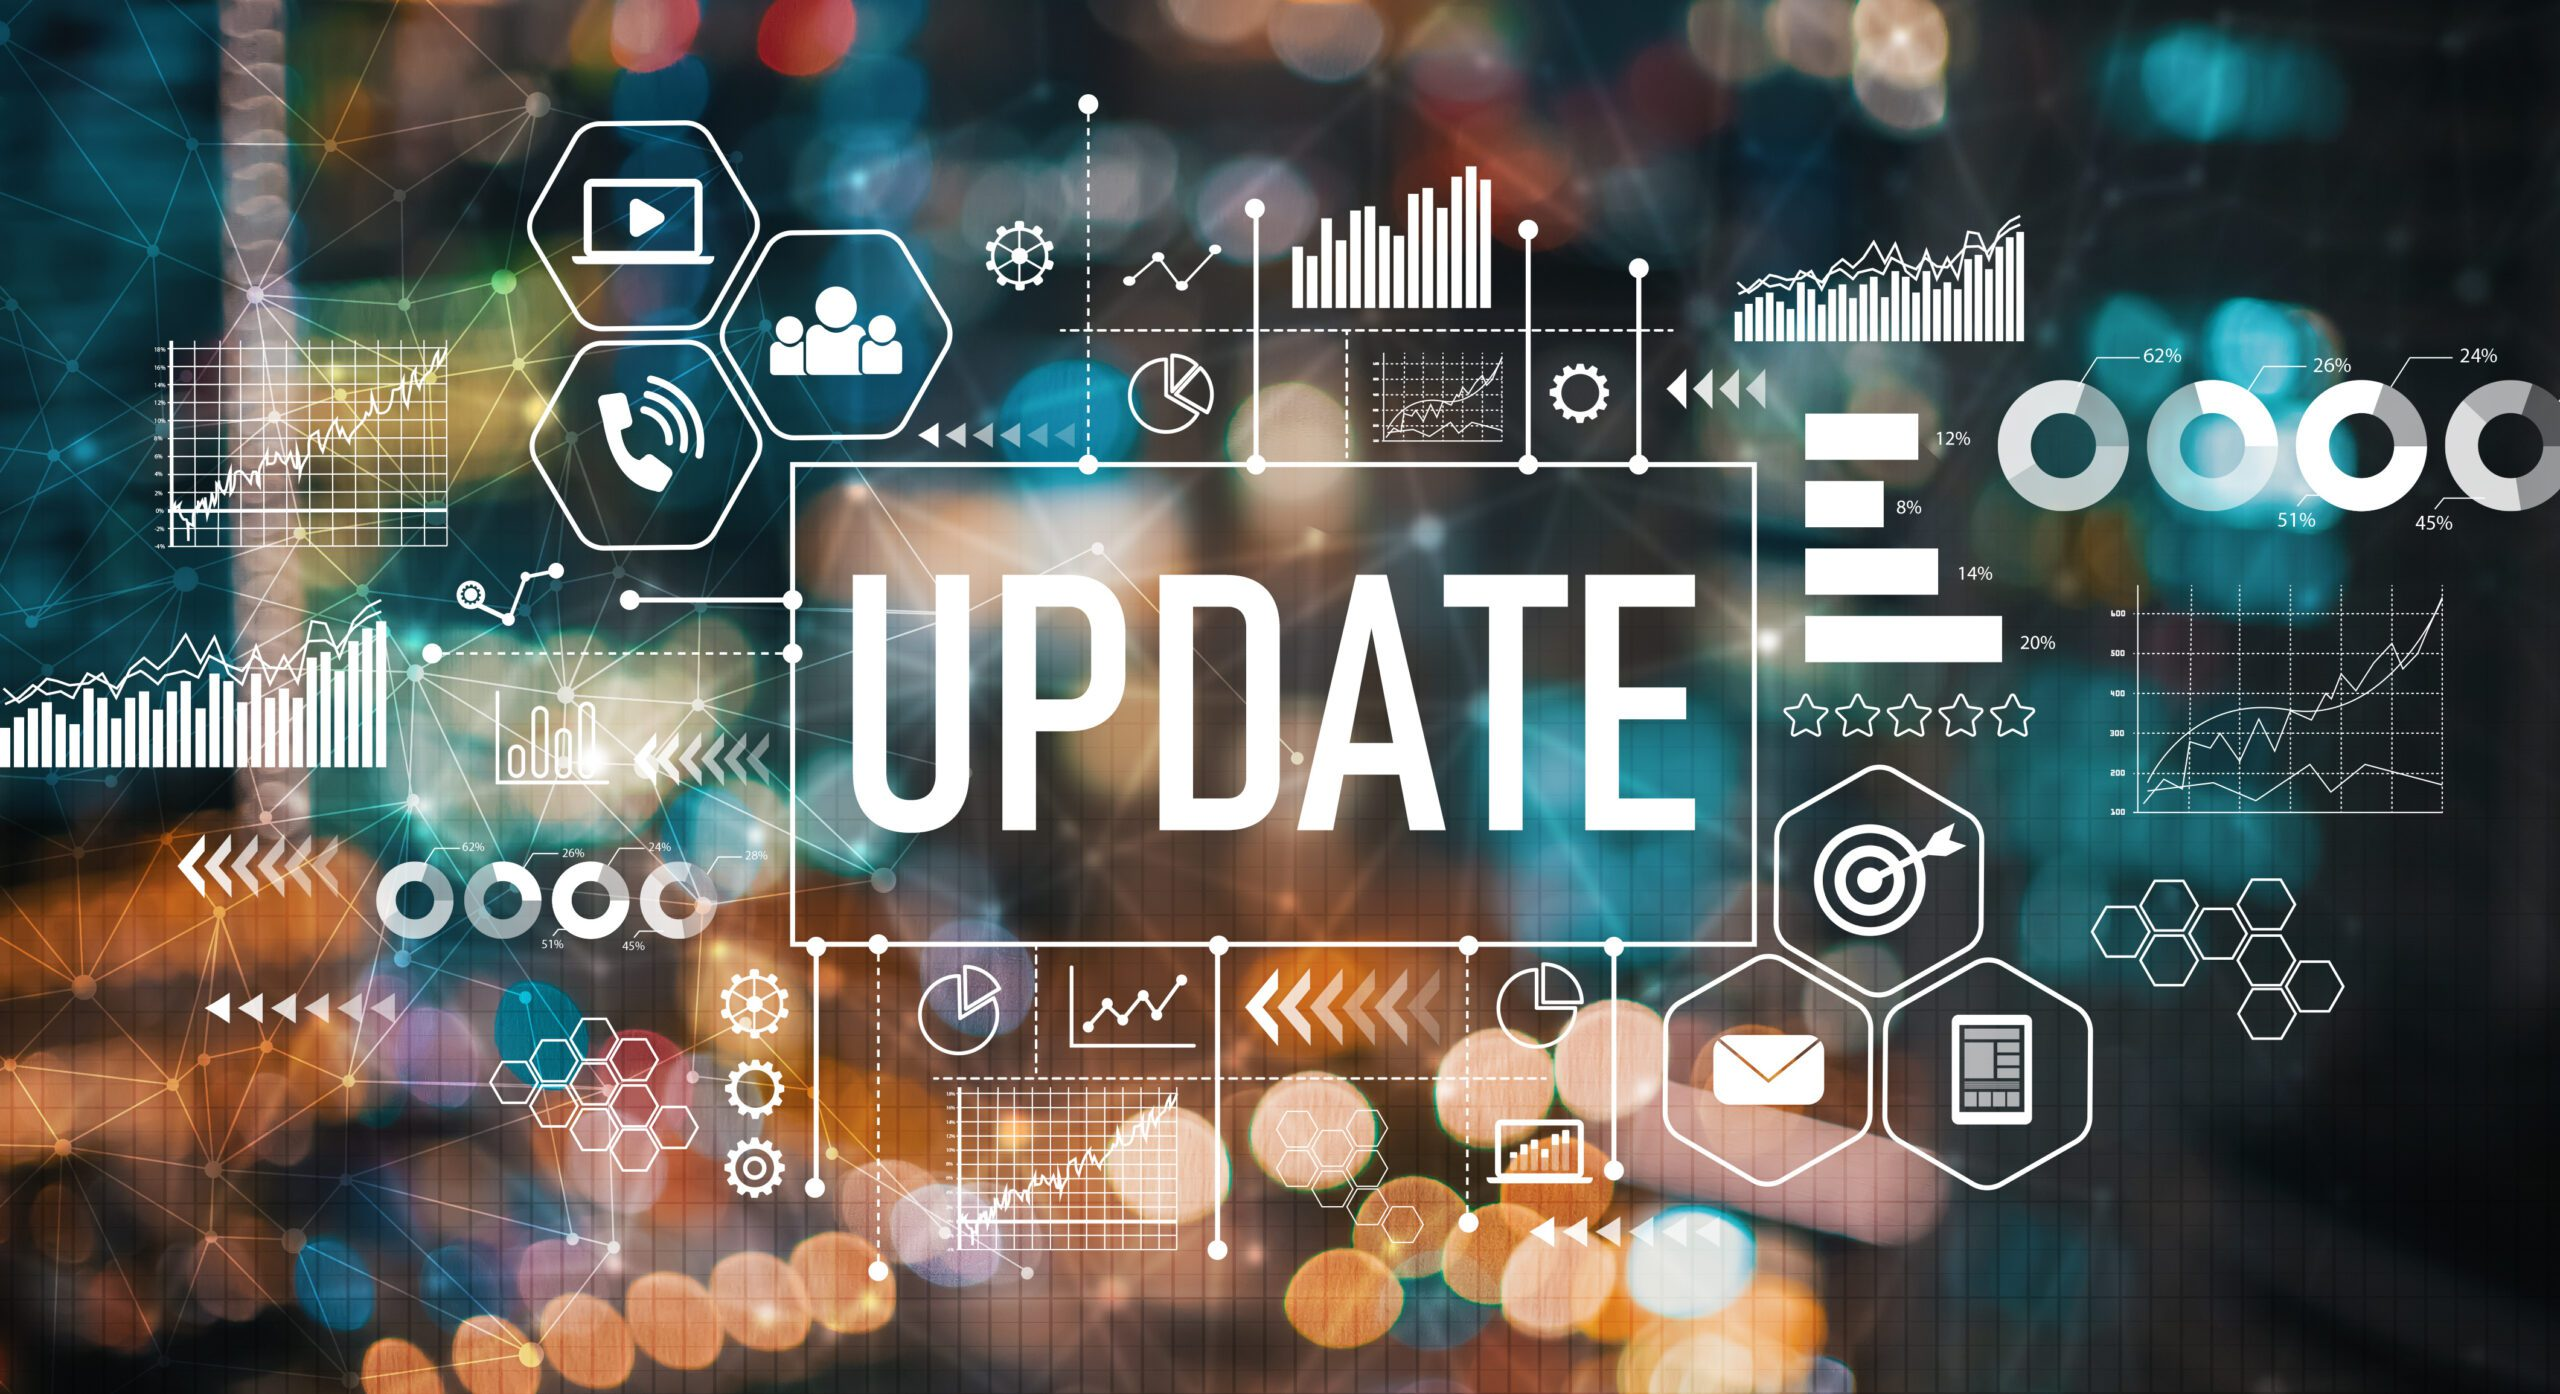 Updates to software